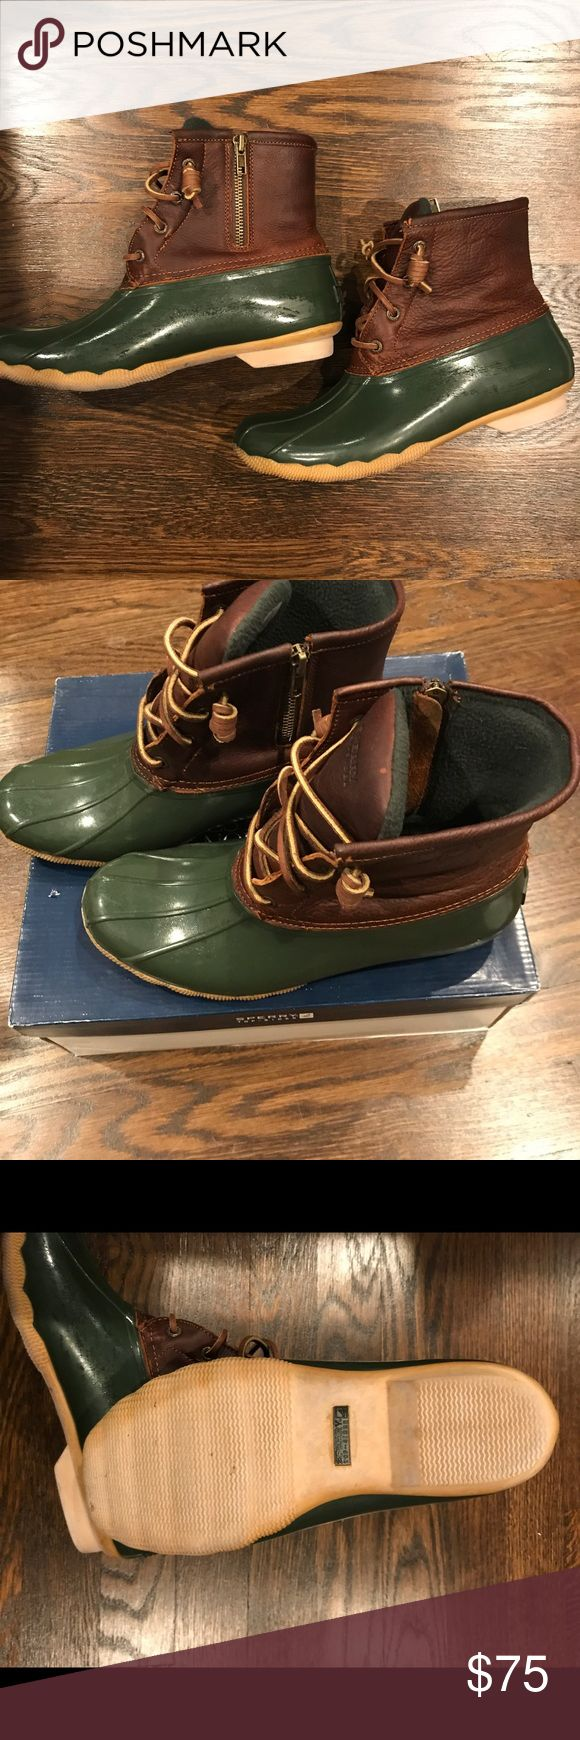 SPERRY RAIN DUCK BOOTS Saltwater Tan & Green 9 SPERRY RAIN DUCK BOOTS Saltwater Tan & Green - Size 9, Great Used Condition Sperry Top-Sider Shoes Winter & Rain Boots